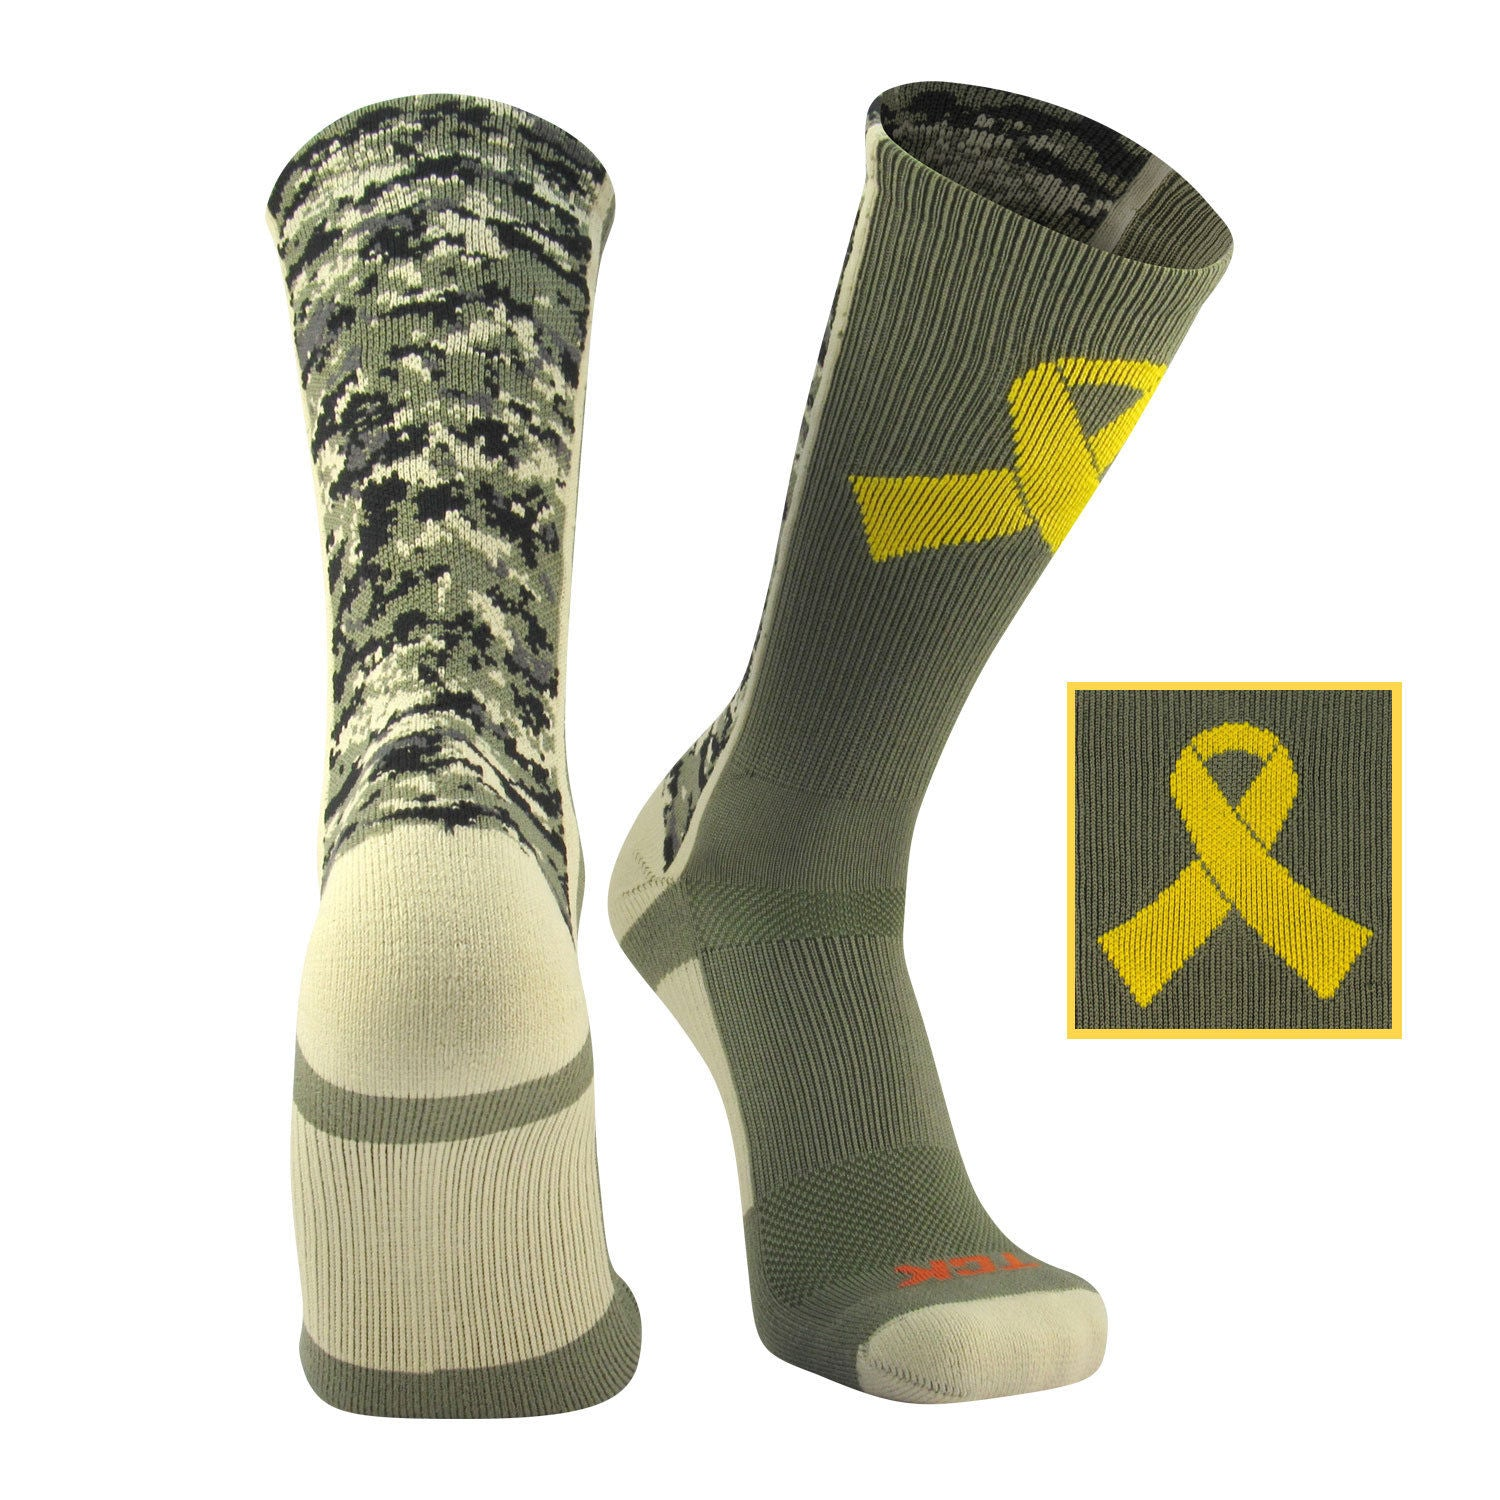 TCK Digital Camo Elite - Military Ribbon Crew Socks - proDRI fabric